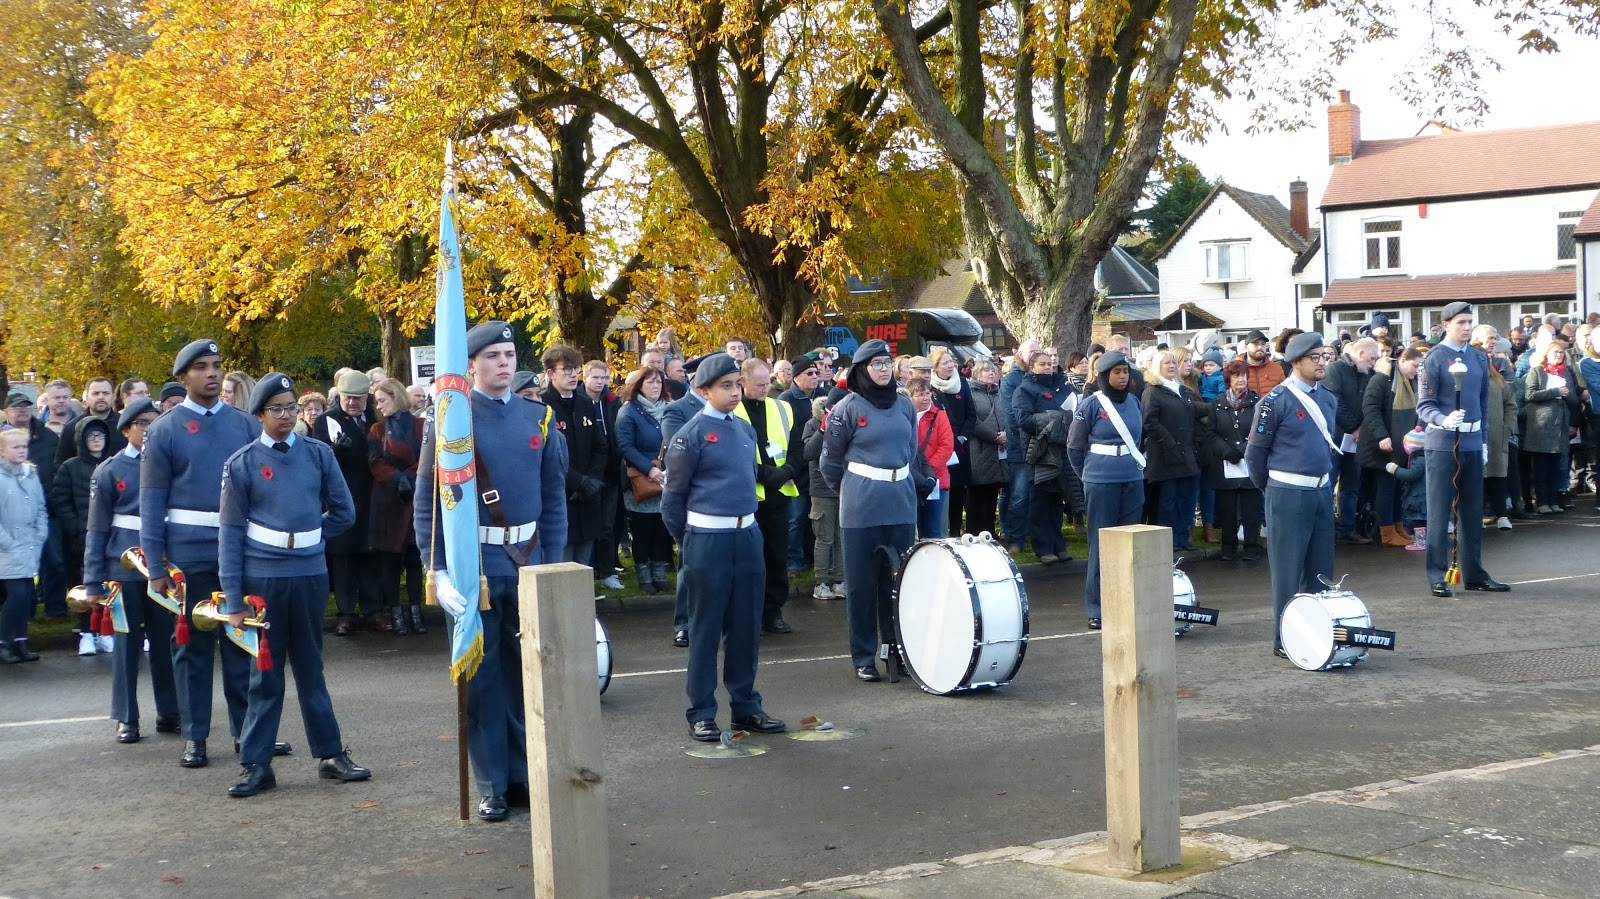 Banners and Air Cadets band